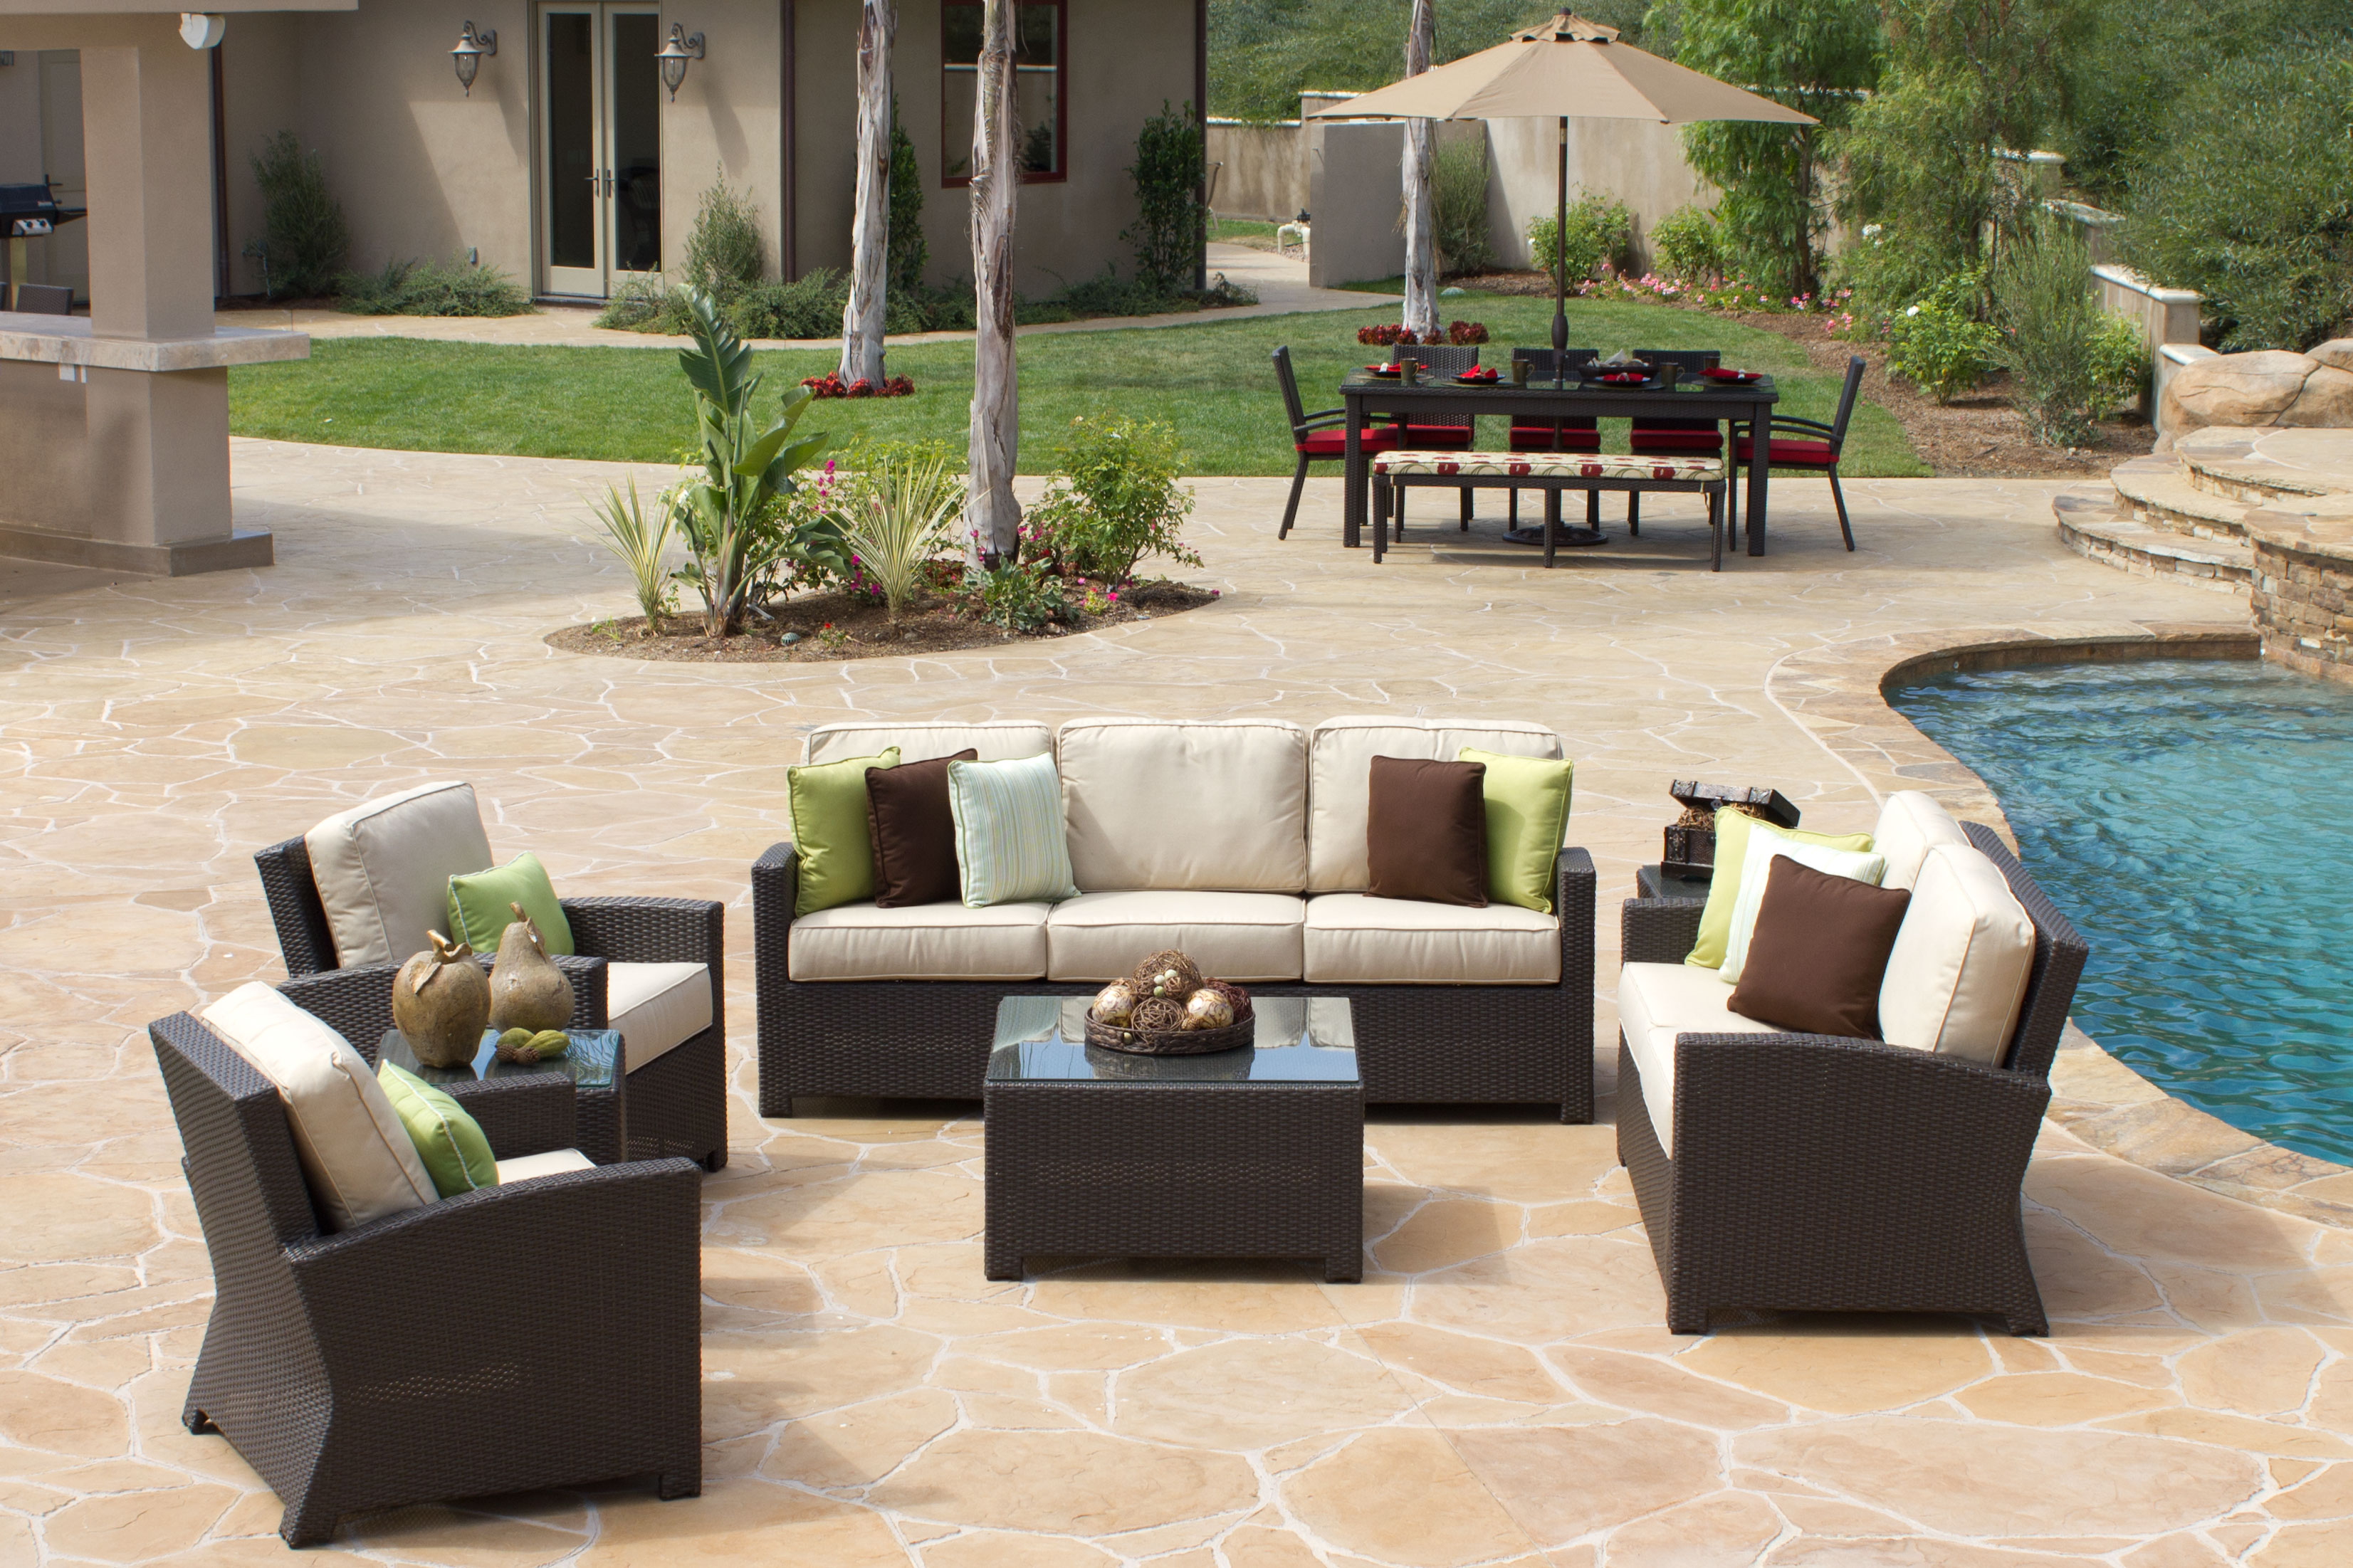 Outdoor Furniture Las Vegas Outdoor Kitchens and Barbecues